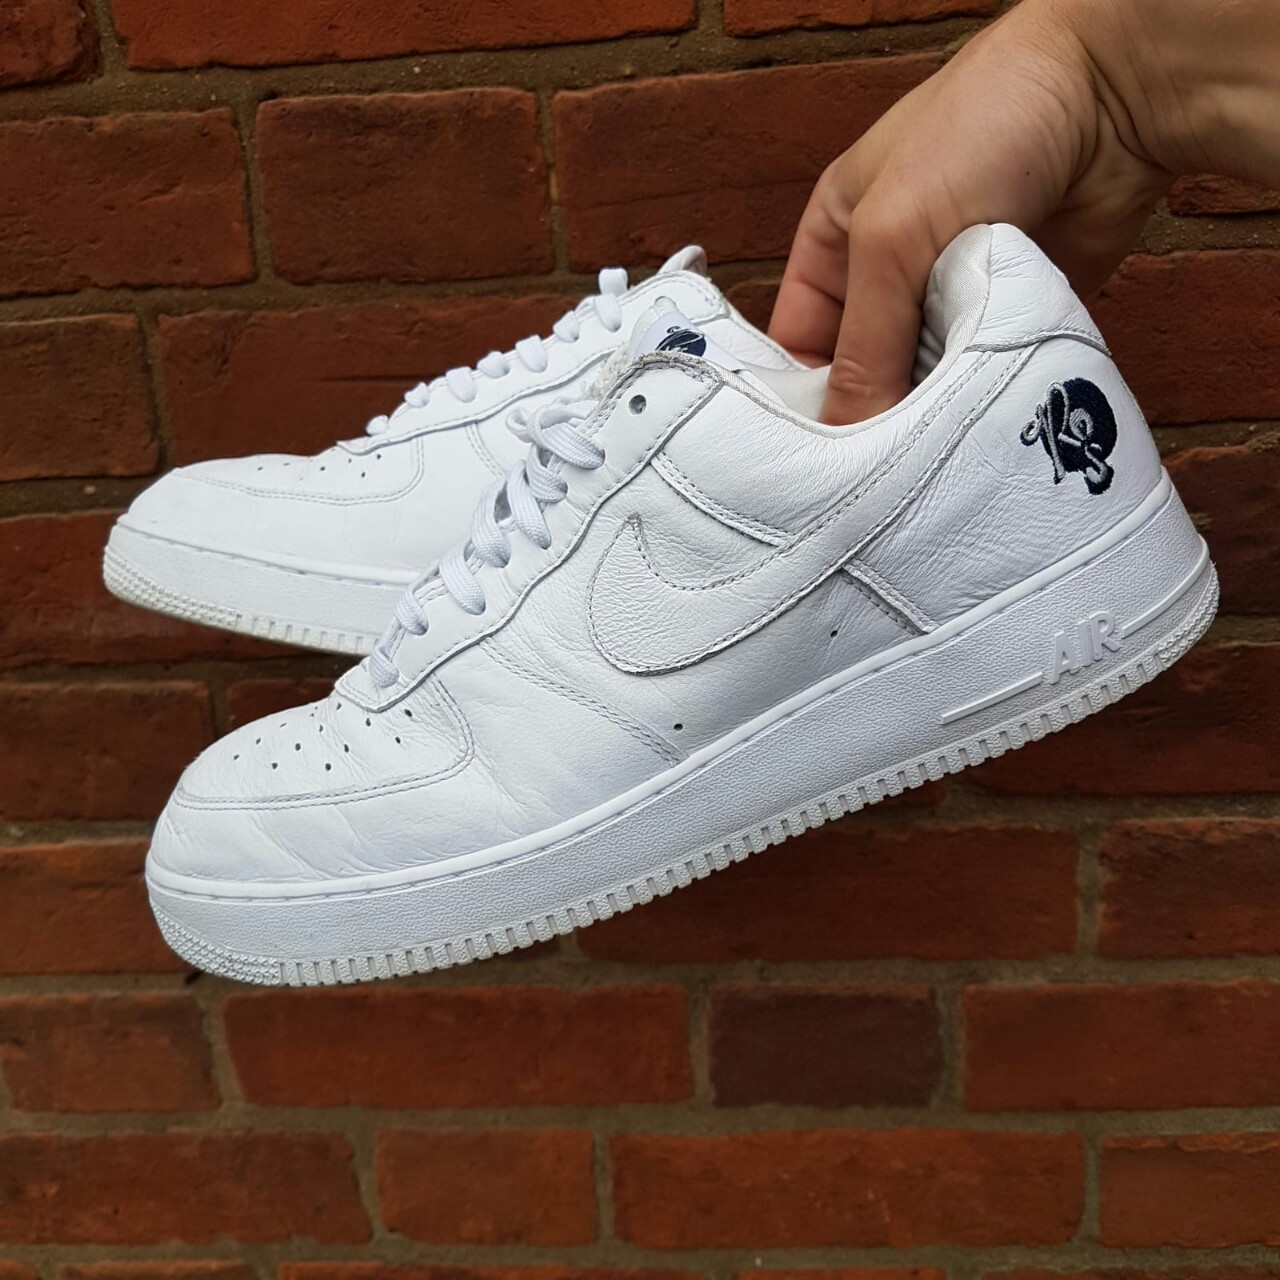 Air Force 1 Rocafella Records